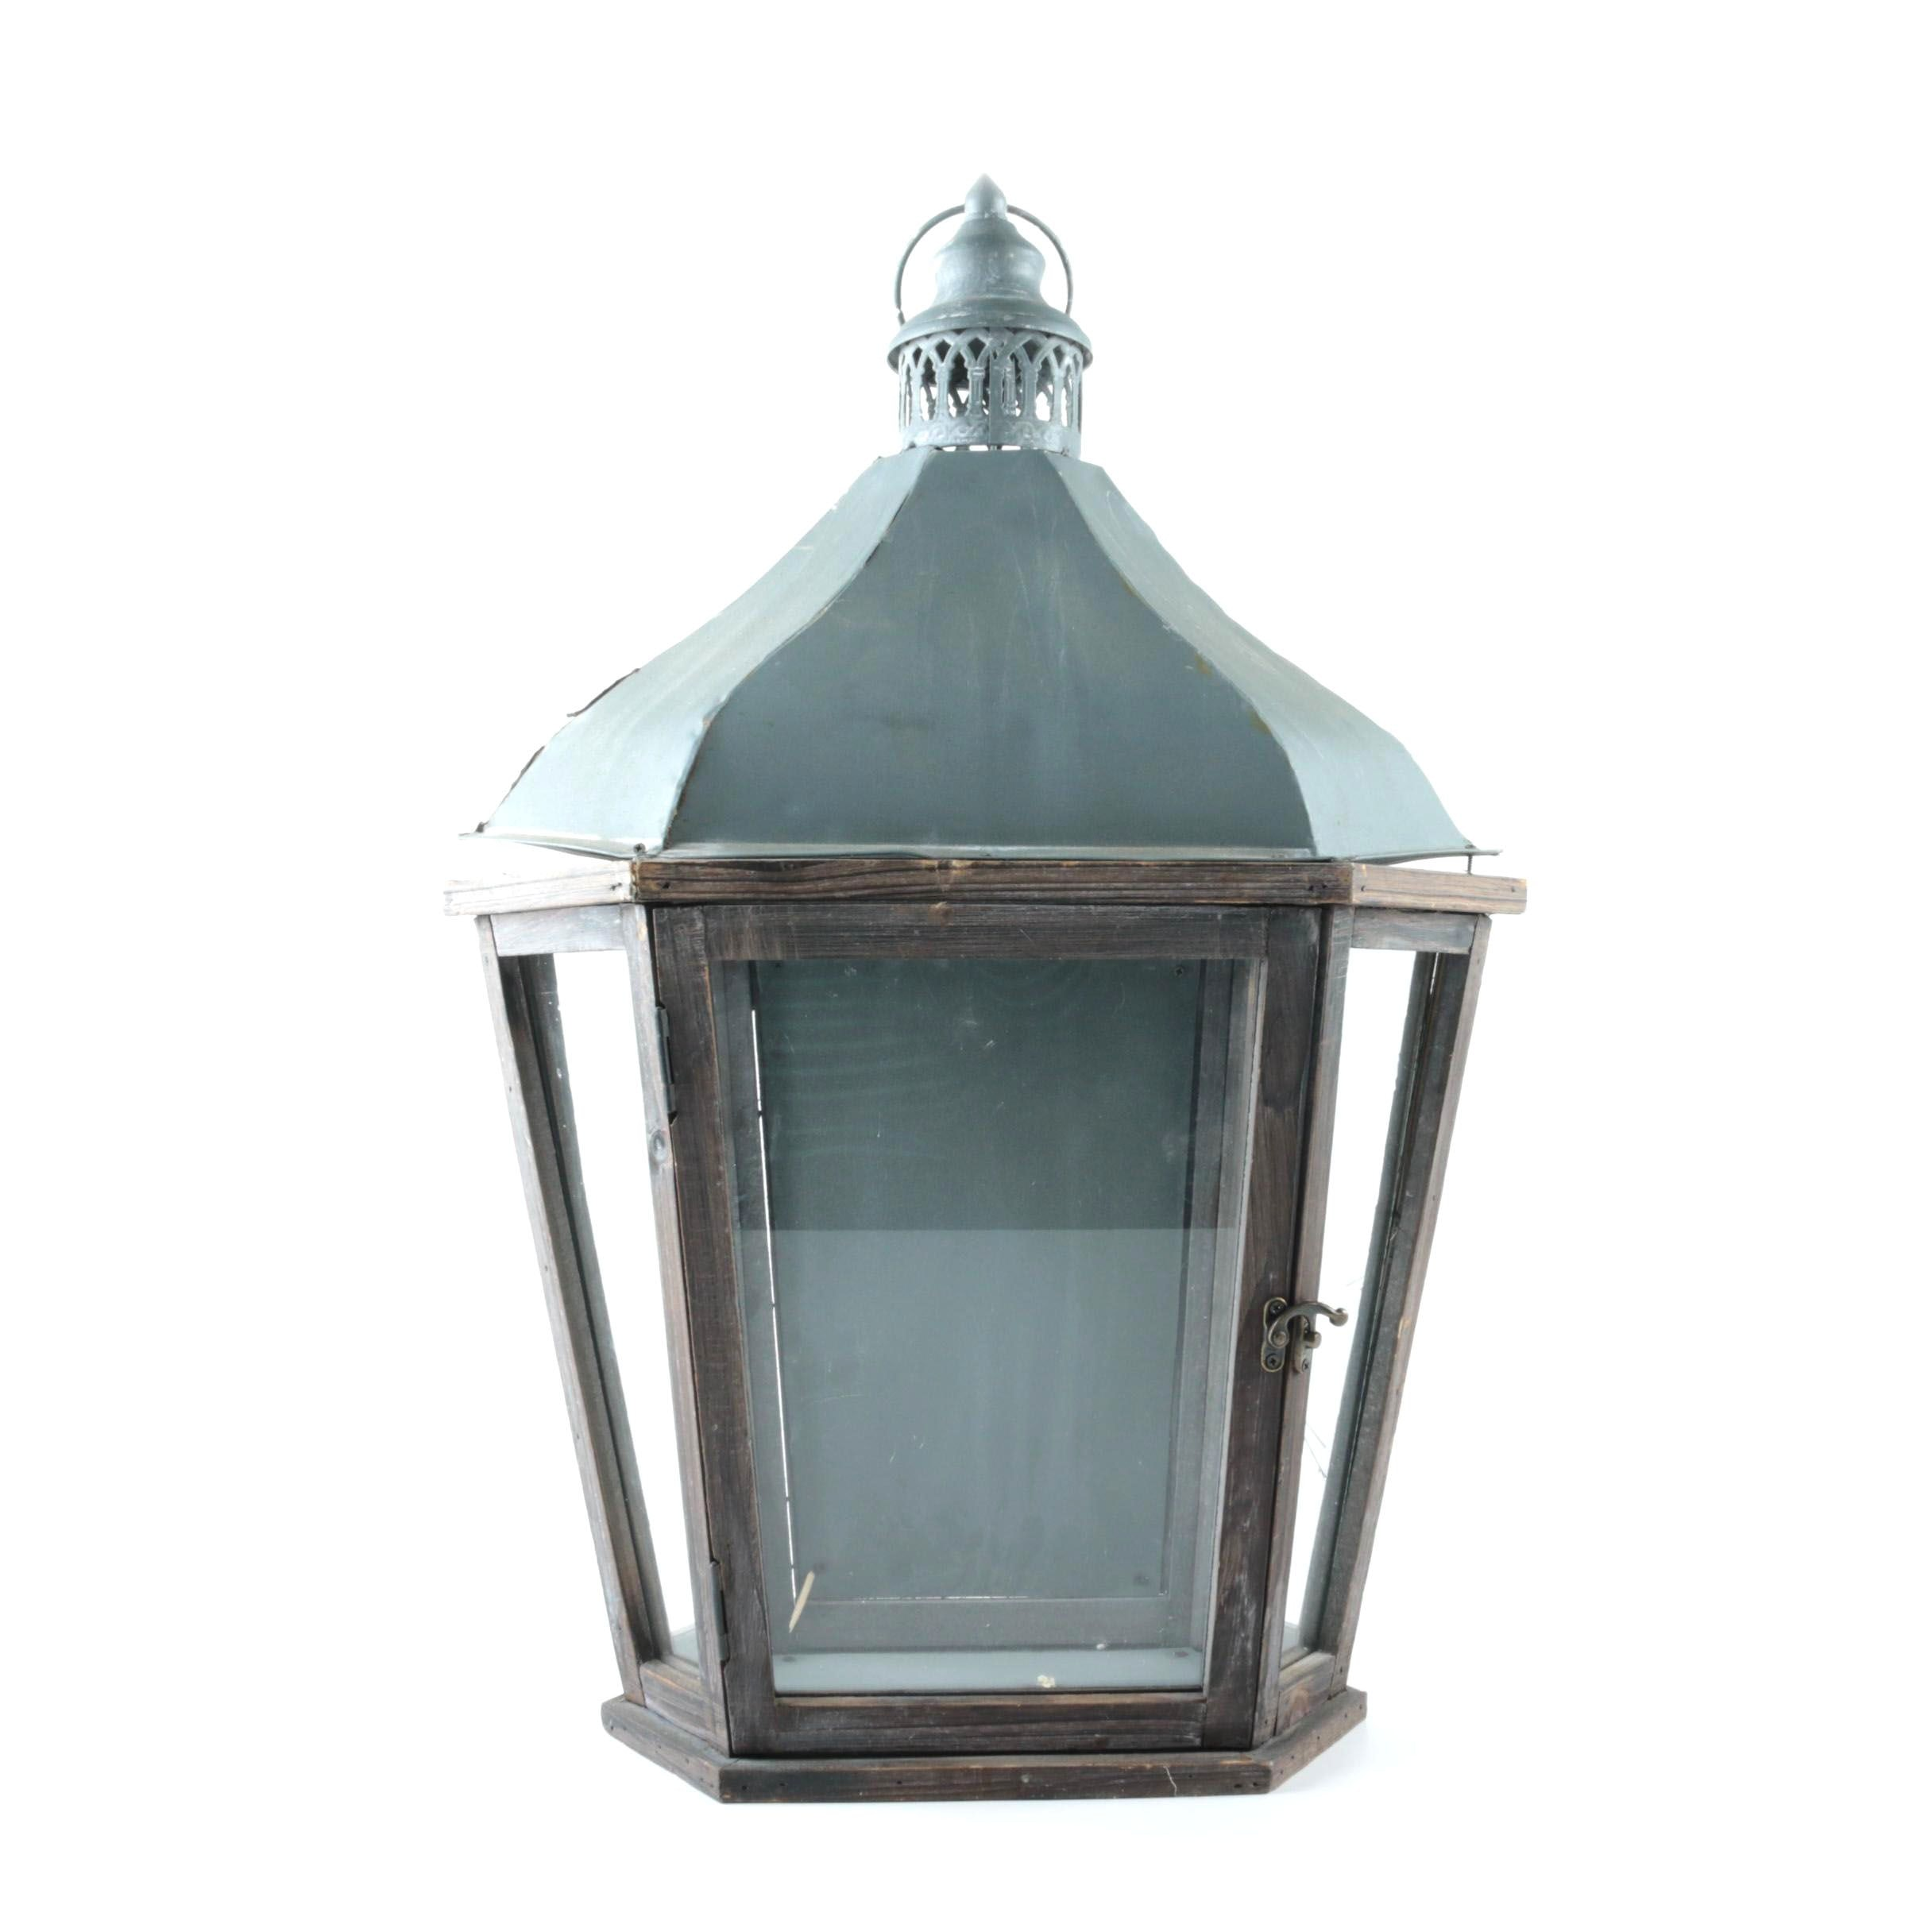 Wood and Metal Lantern with Glass Panels